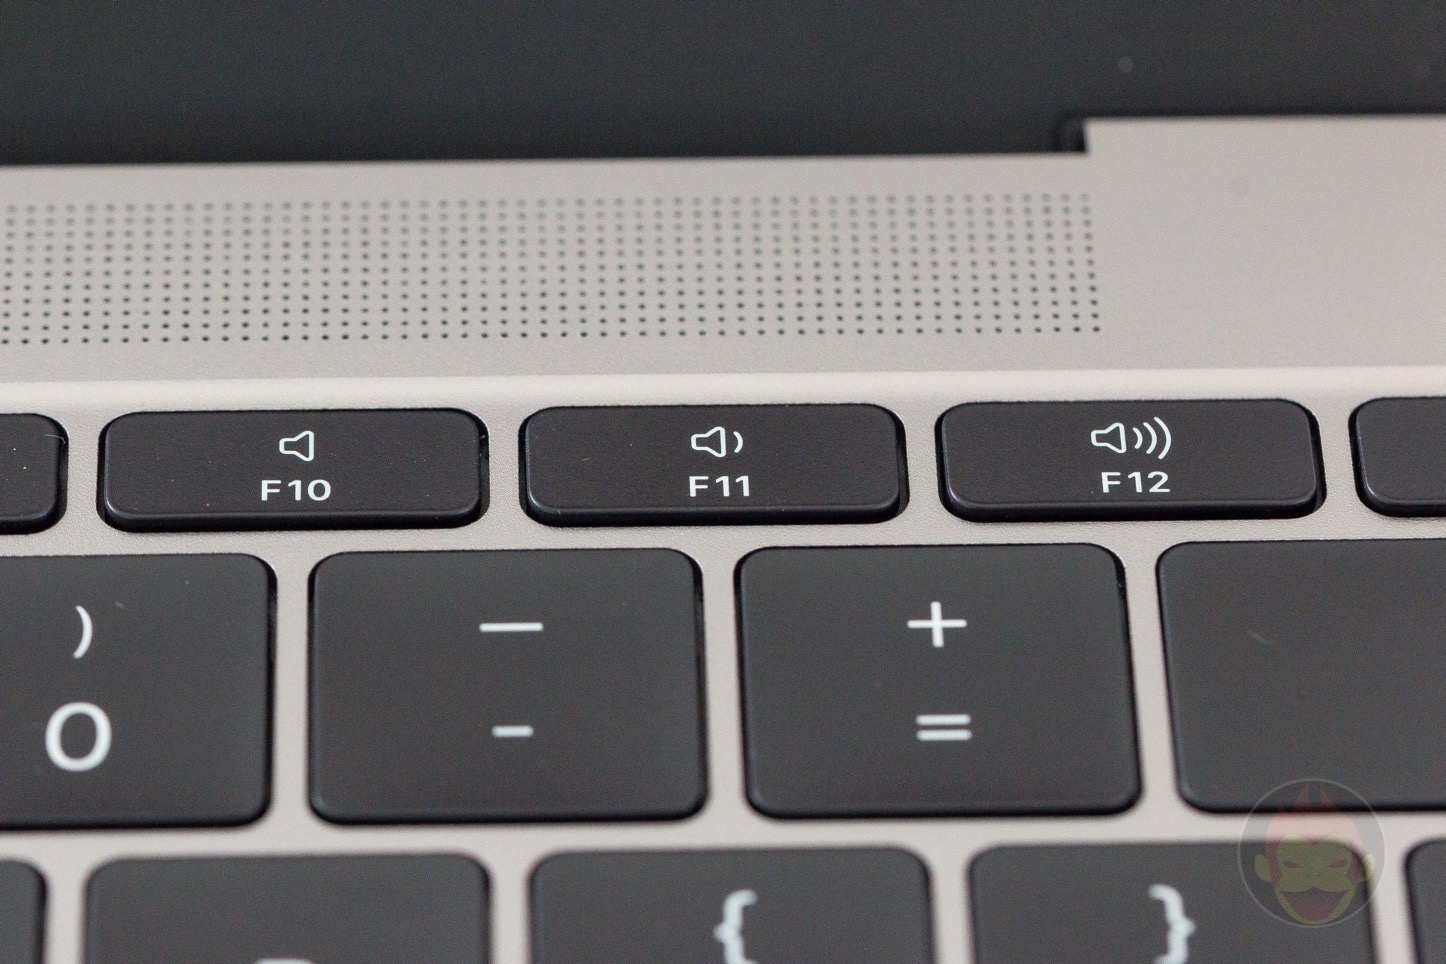 2016-MacBook-1.3GHz-Review-149.jpg